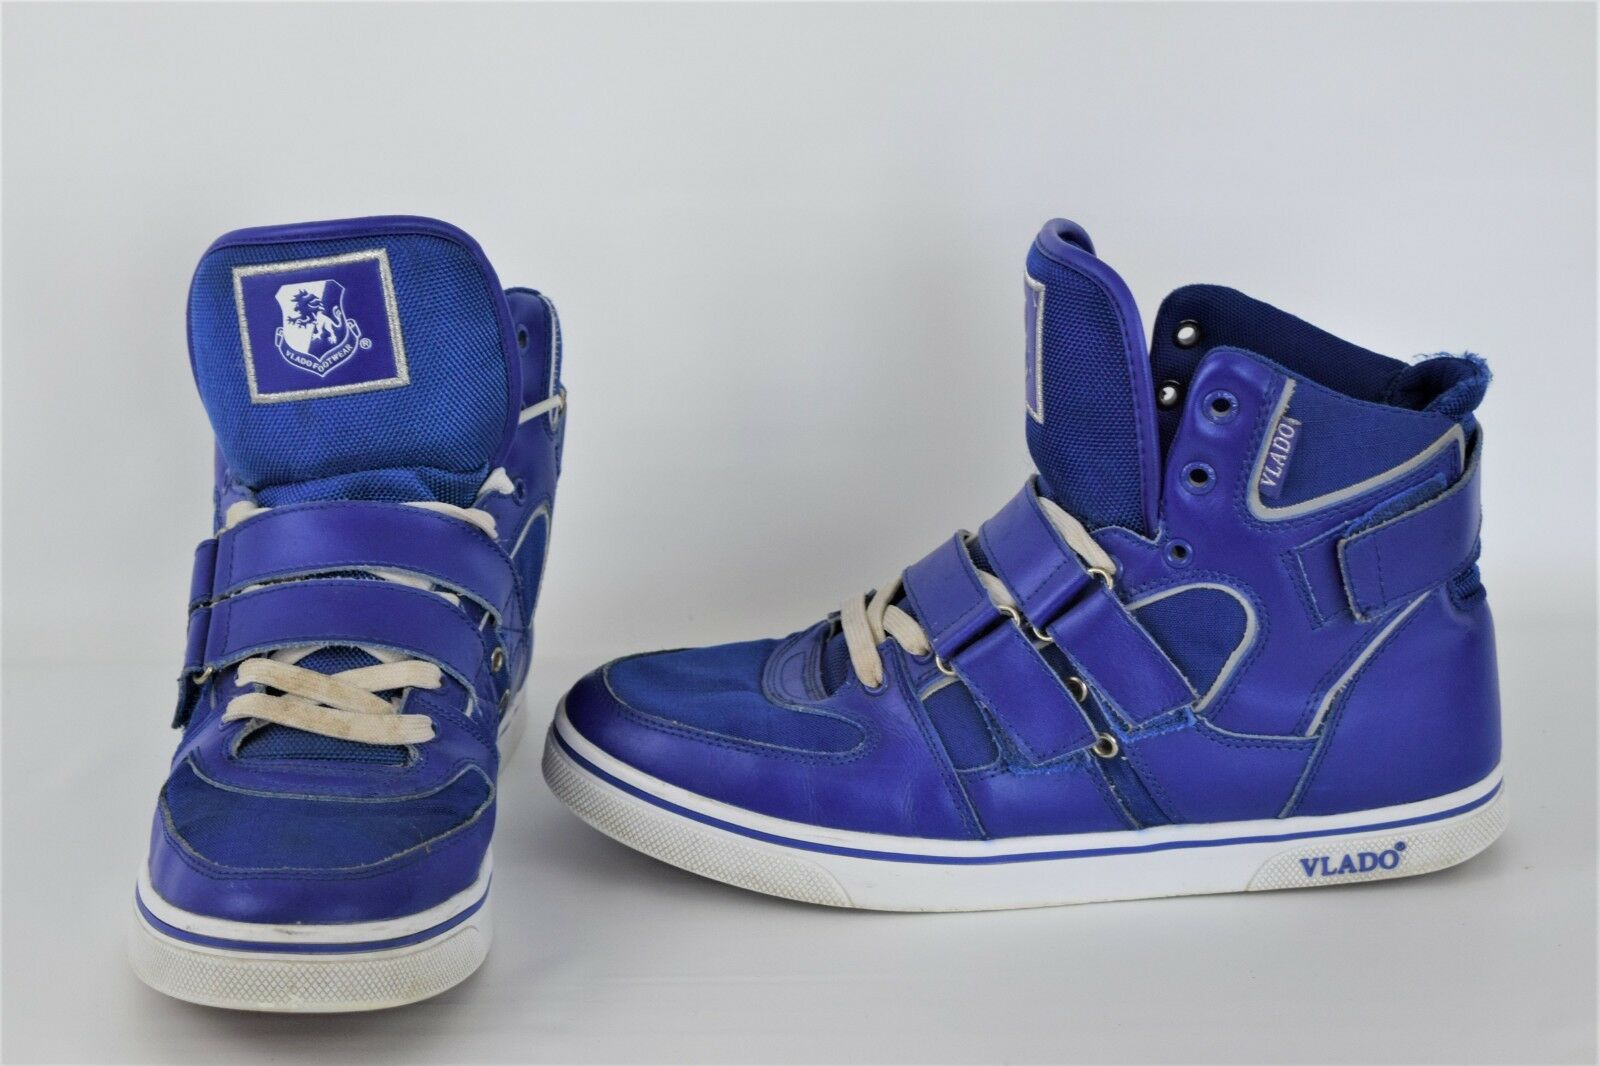 Vlado Knight 2 bluee Leather Lace-Up Hi-Top Athletic Sneakers Men's U.S. 10.5